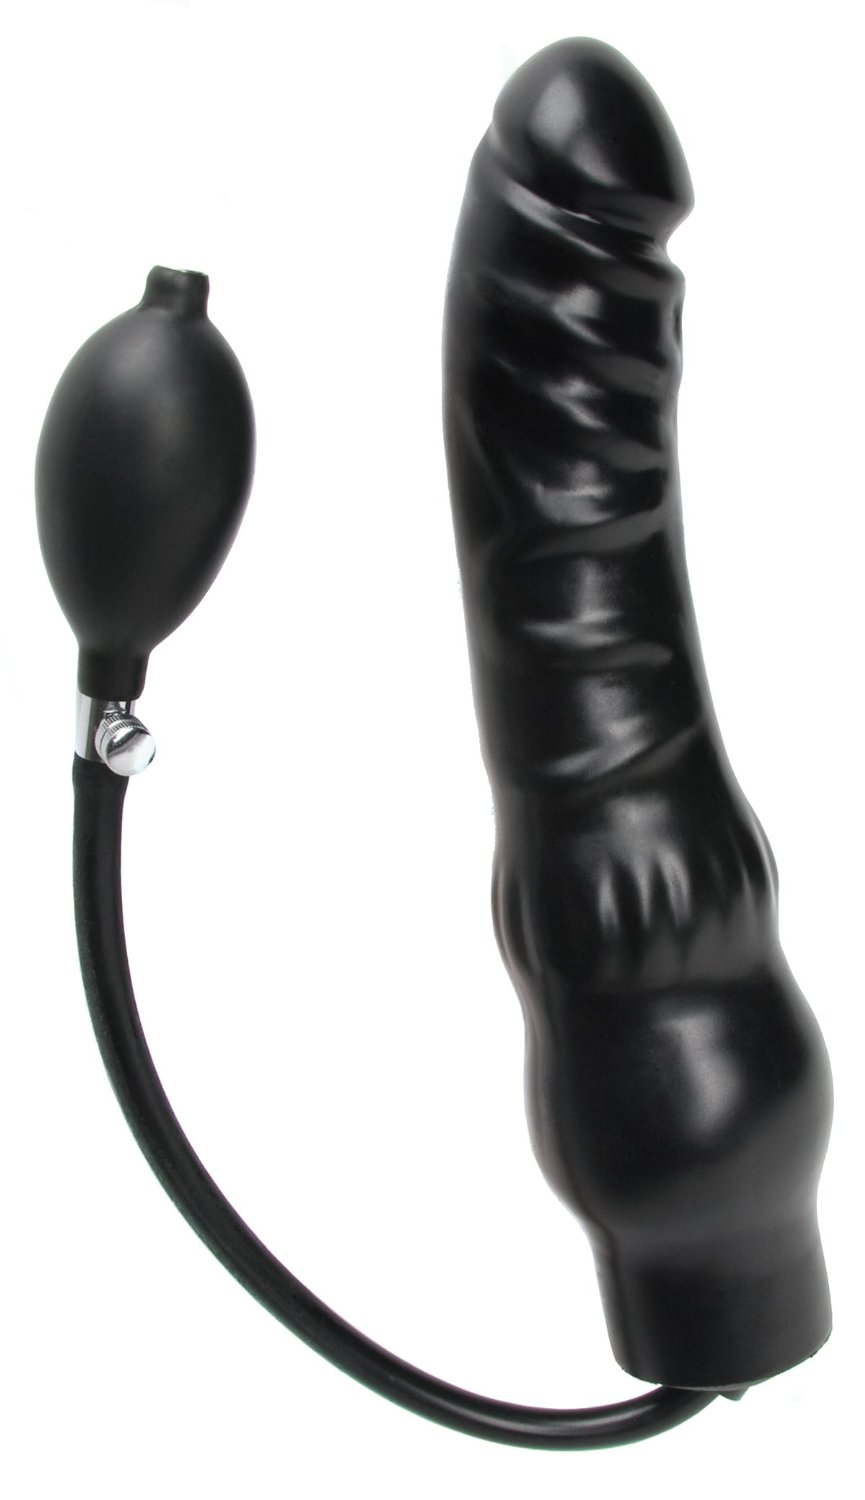 INFLATABLE PENIS